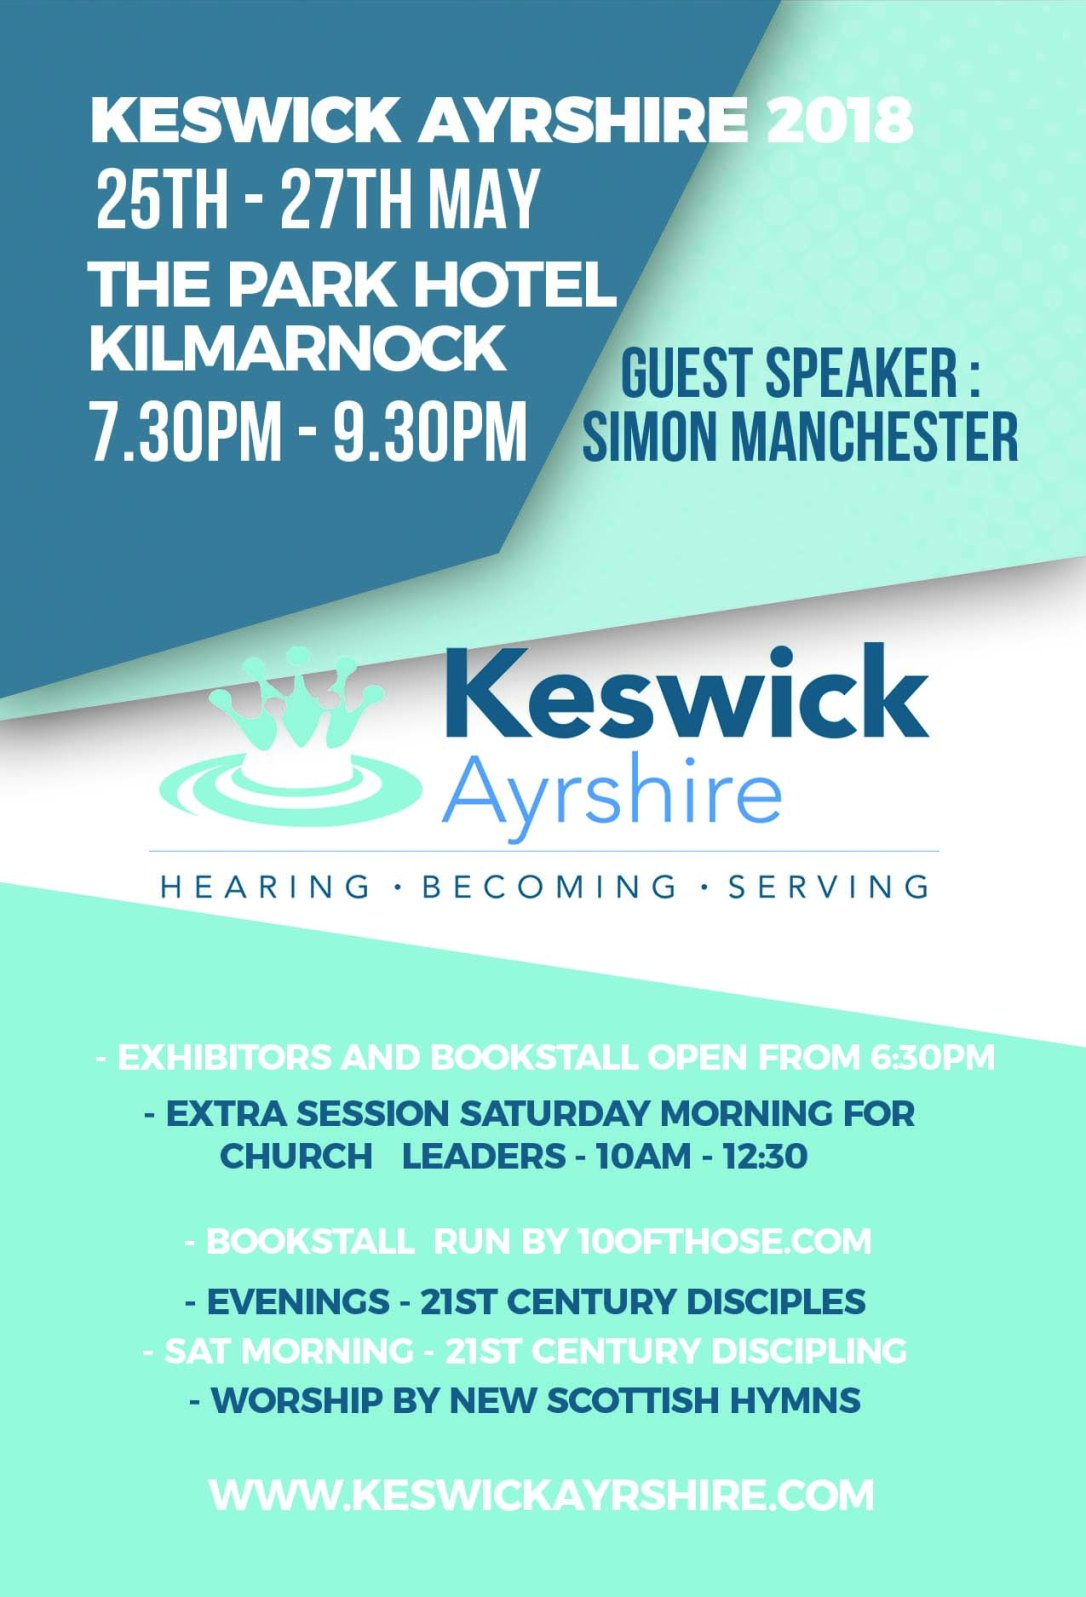 Keswick Ayrshire 2018 Flyer Green - White